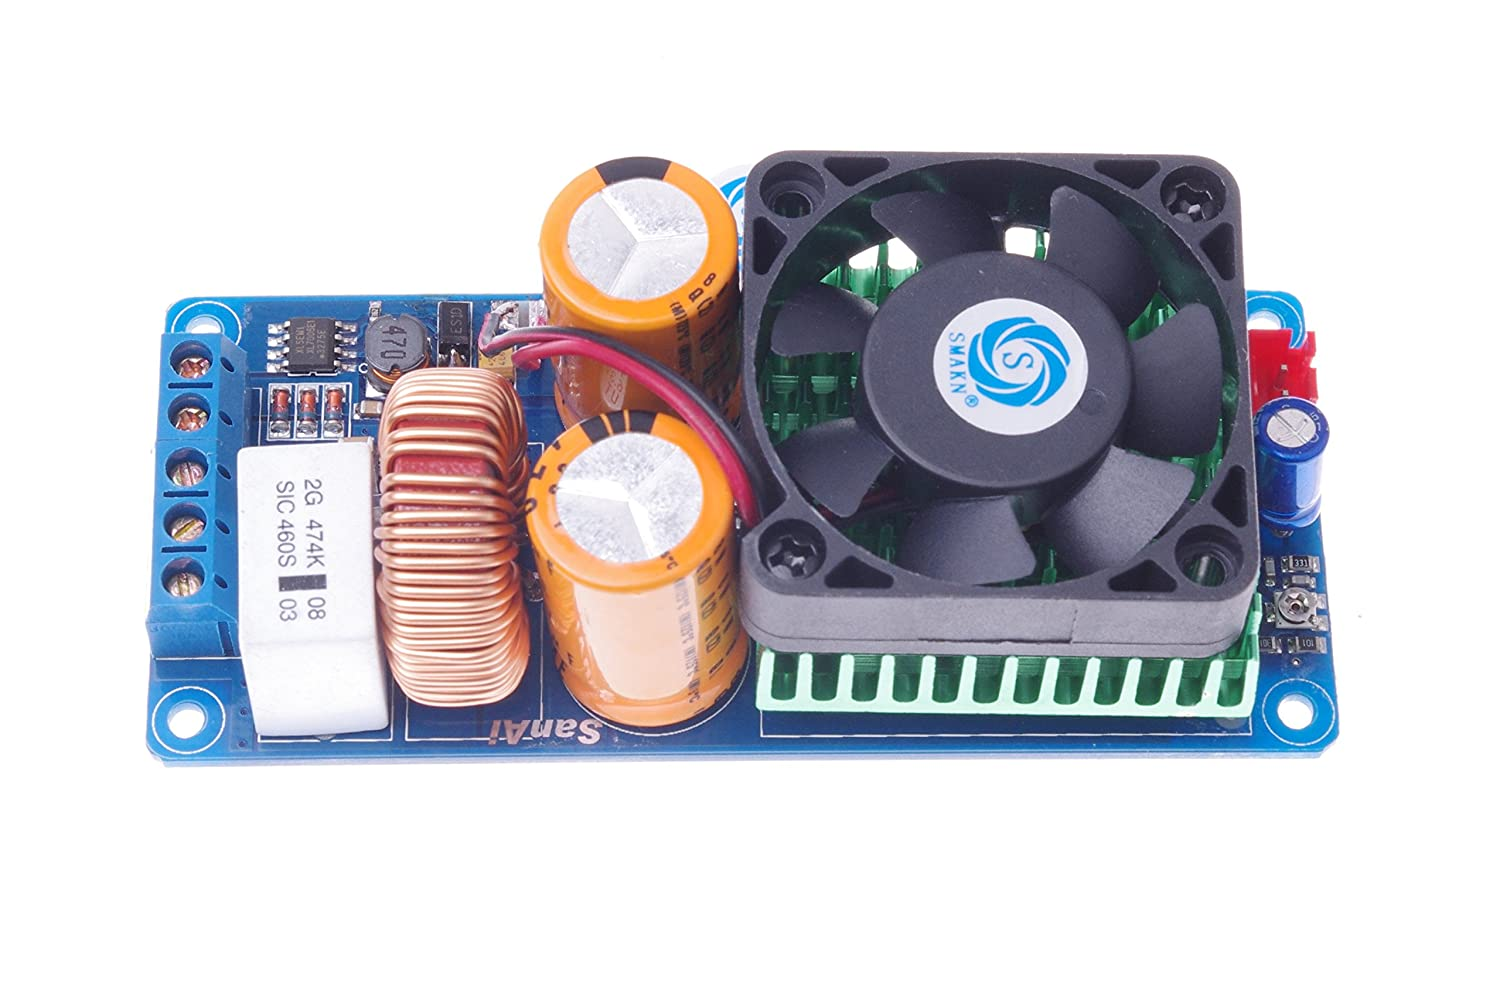 Smakn Irs2092s 500w Amp Board High Power D Class Hifi Digital Powertronix Inductor Amplifier Single Mono Channel Musical Instruments